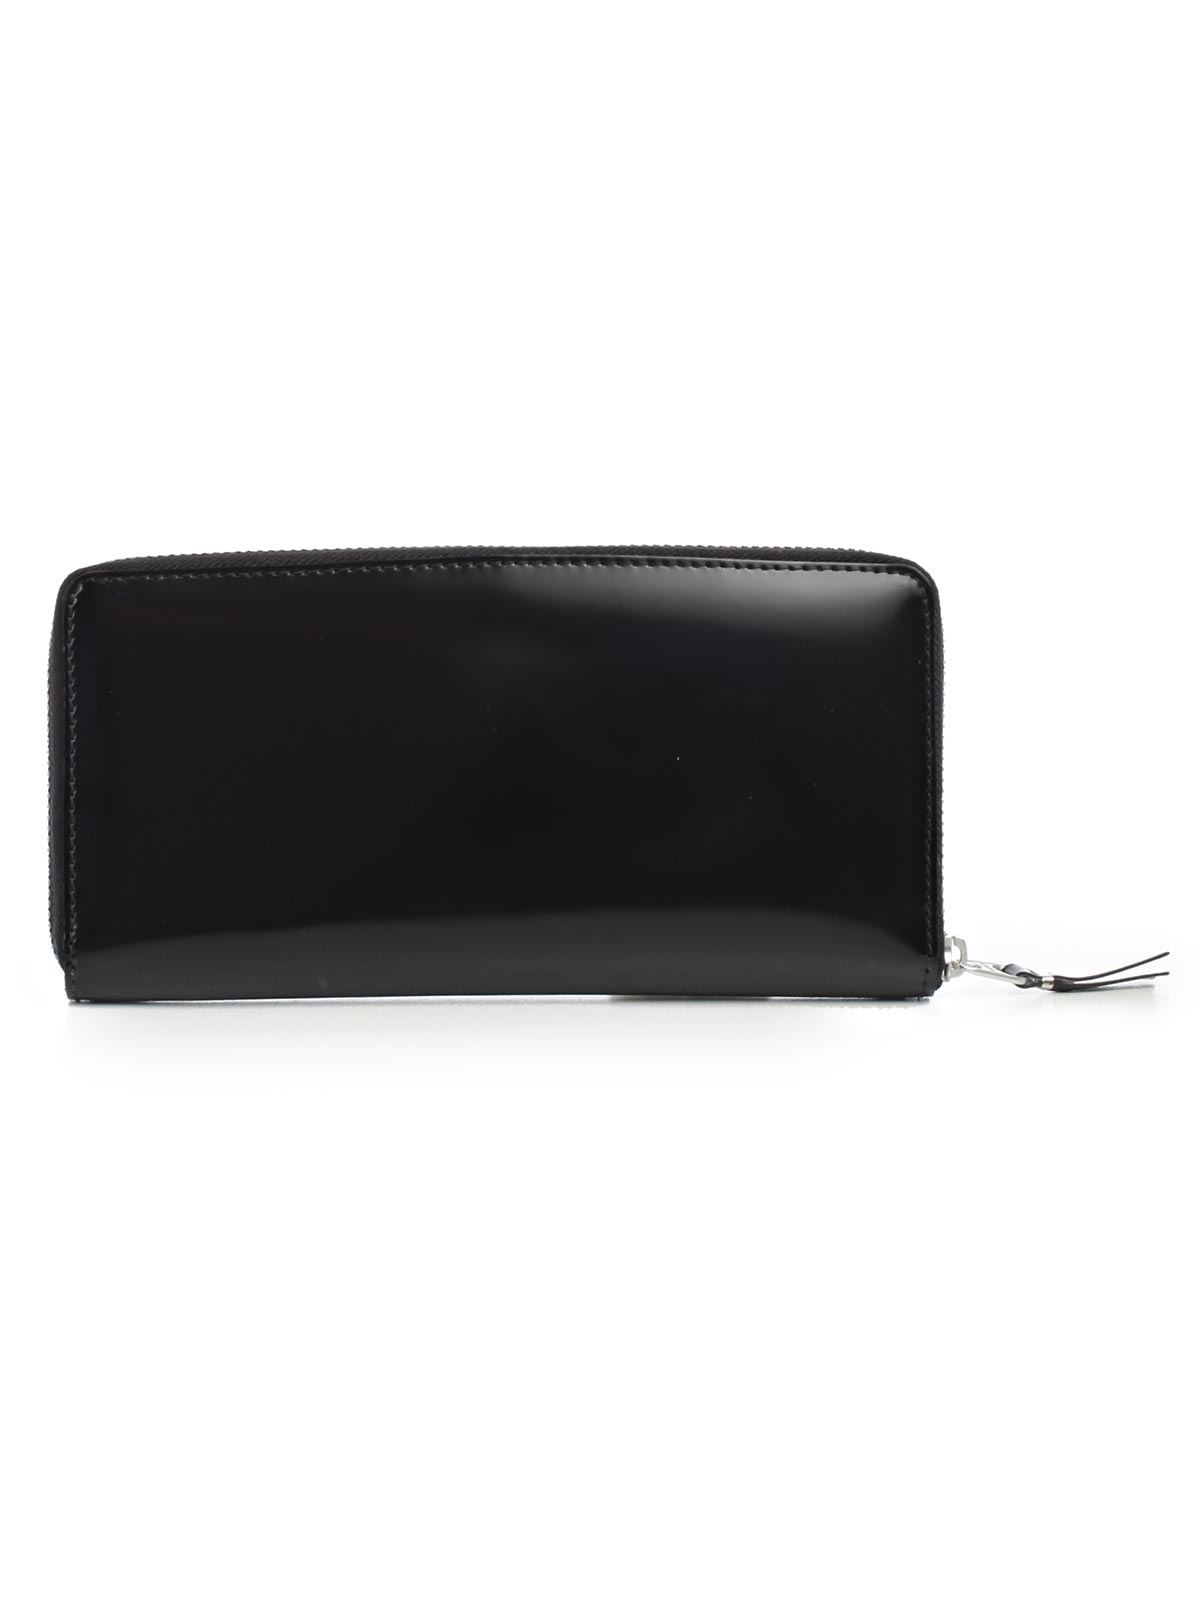 Picture of WALLET  COMME DES GARCONS WALLET P.FOGLI MIRROR INSIDE